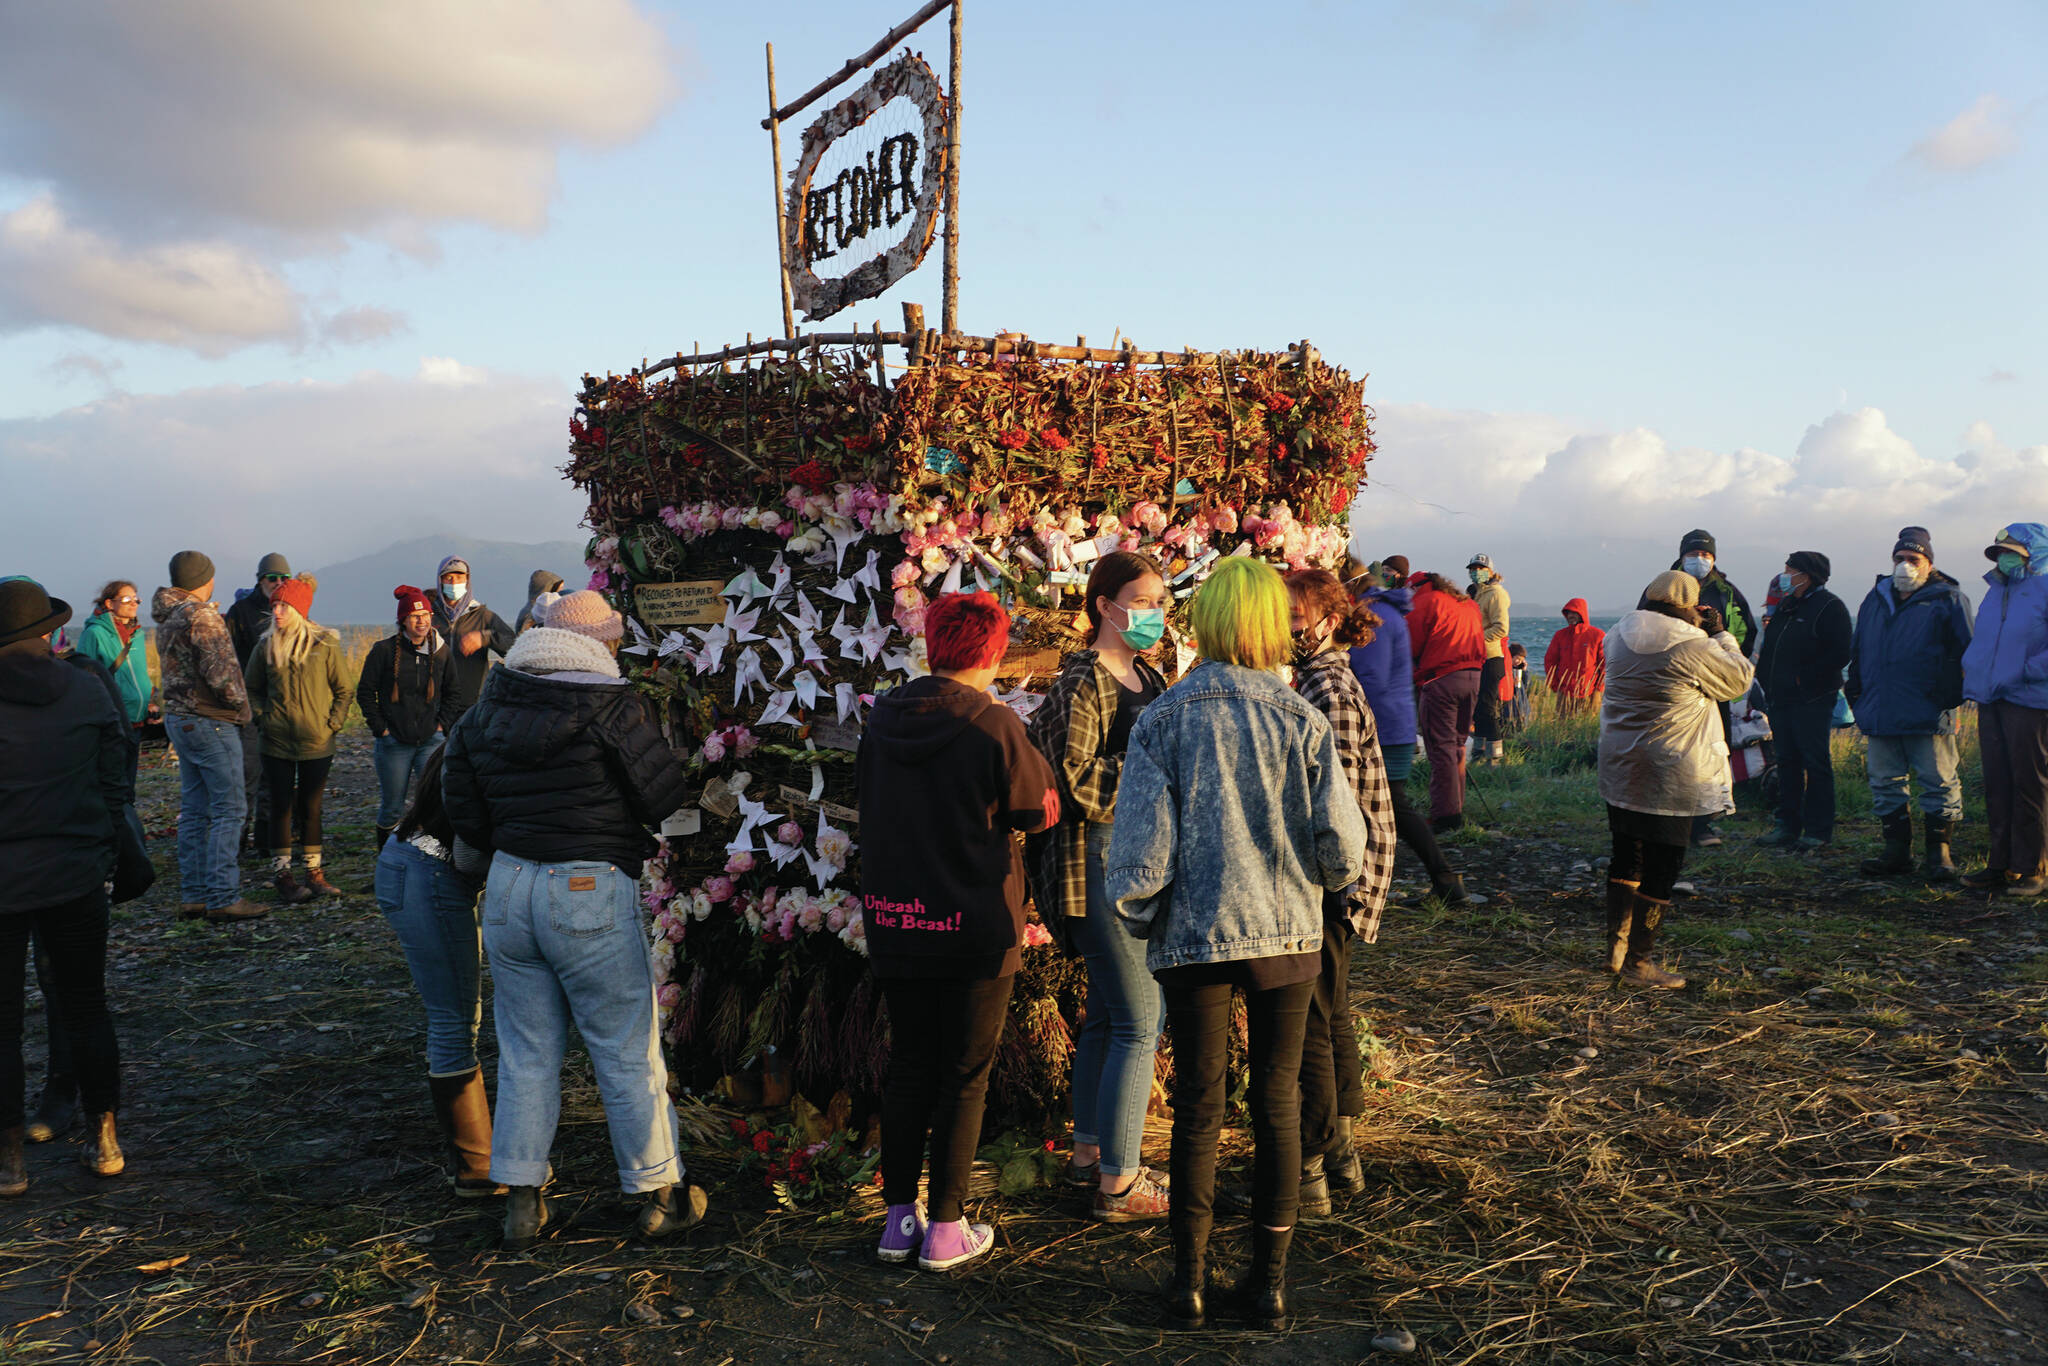 People interact with Recover, the 18th annual Burning Basket, before it's ignited on Sunday, Sept. 12, 2021, at Mariner Park on the Homer Spit in Homer, Alaska. (Photo by Michael Armstrong/Homer News)